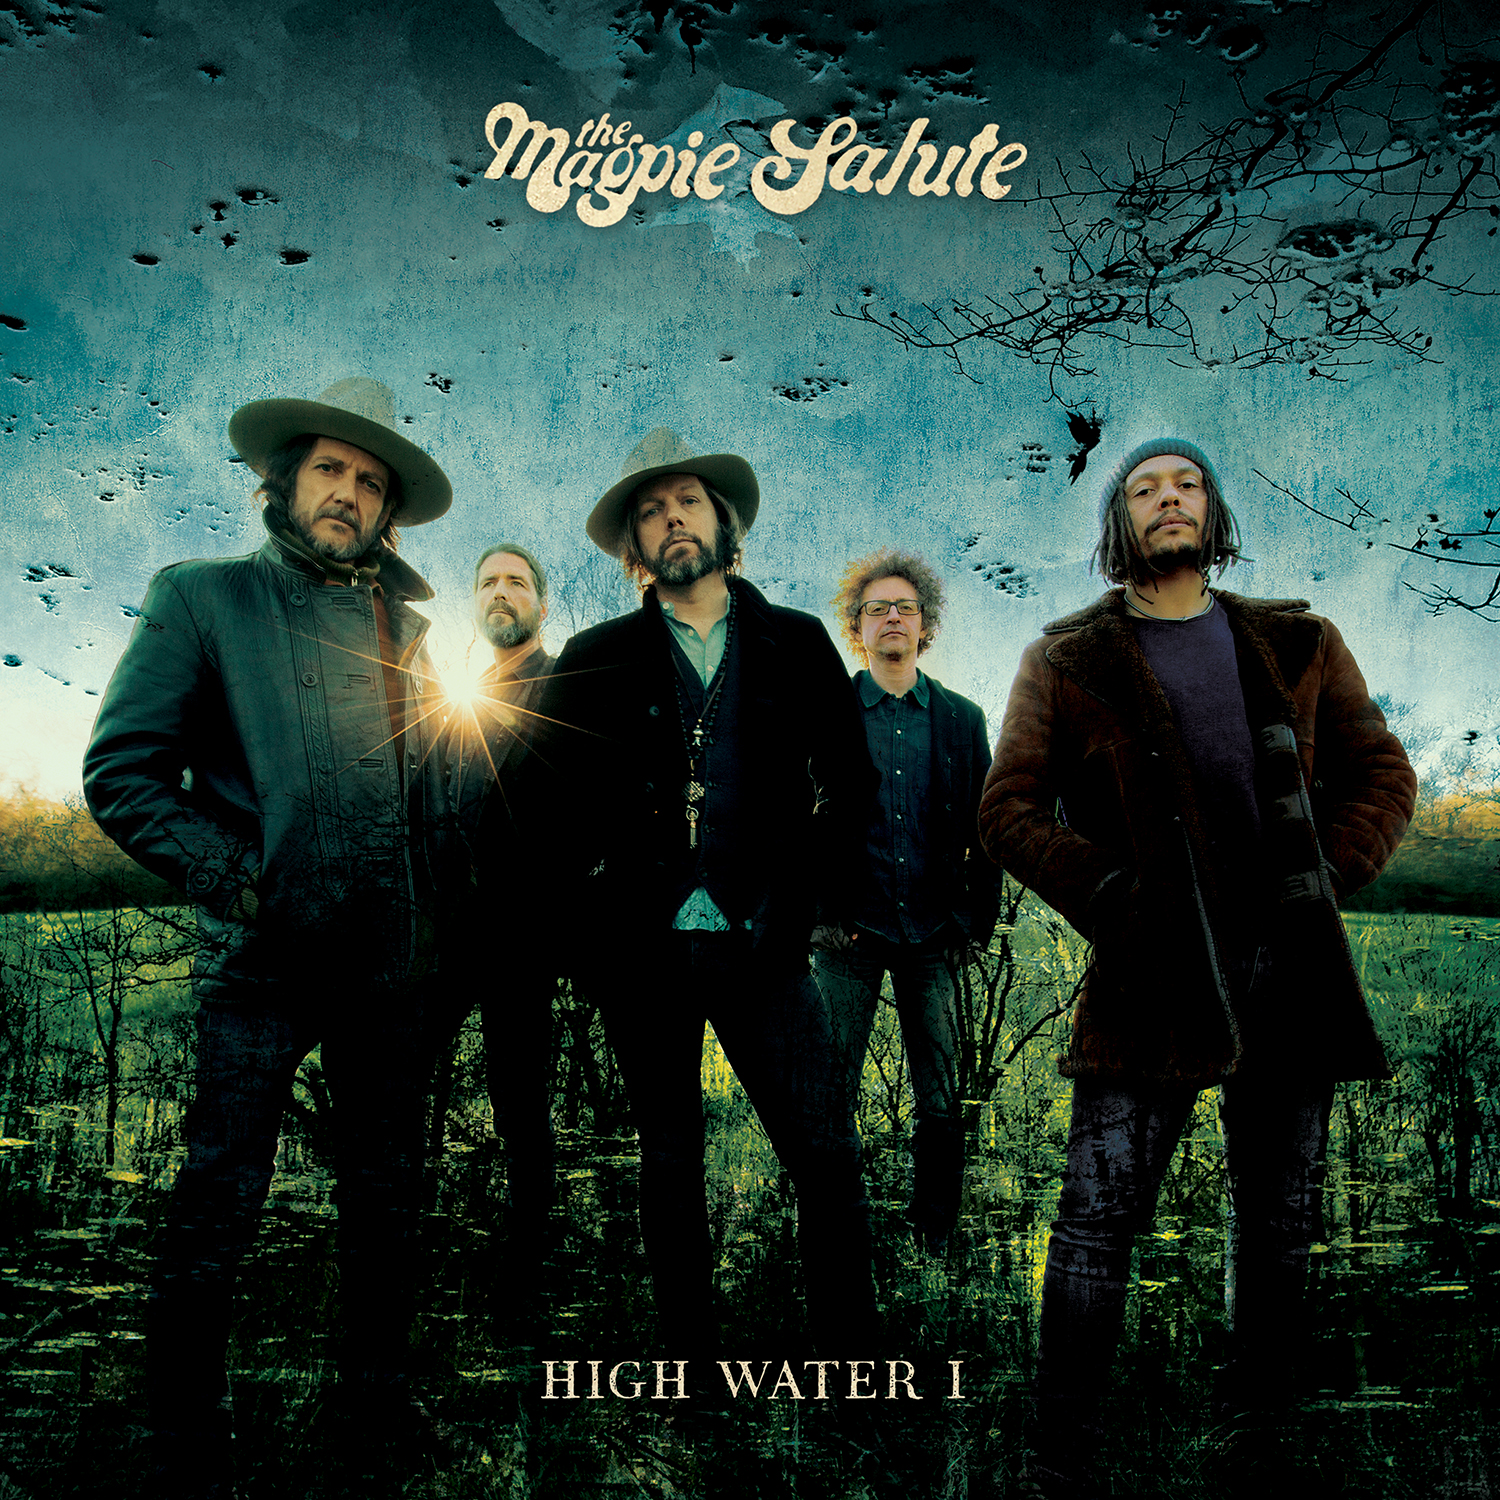 <h5>The Magpie Salute<br>High Water 1</h5>